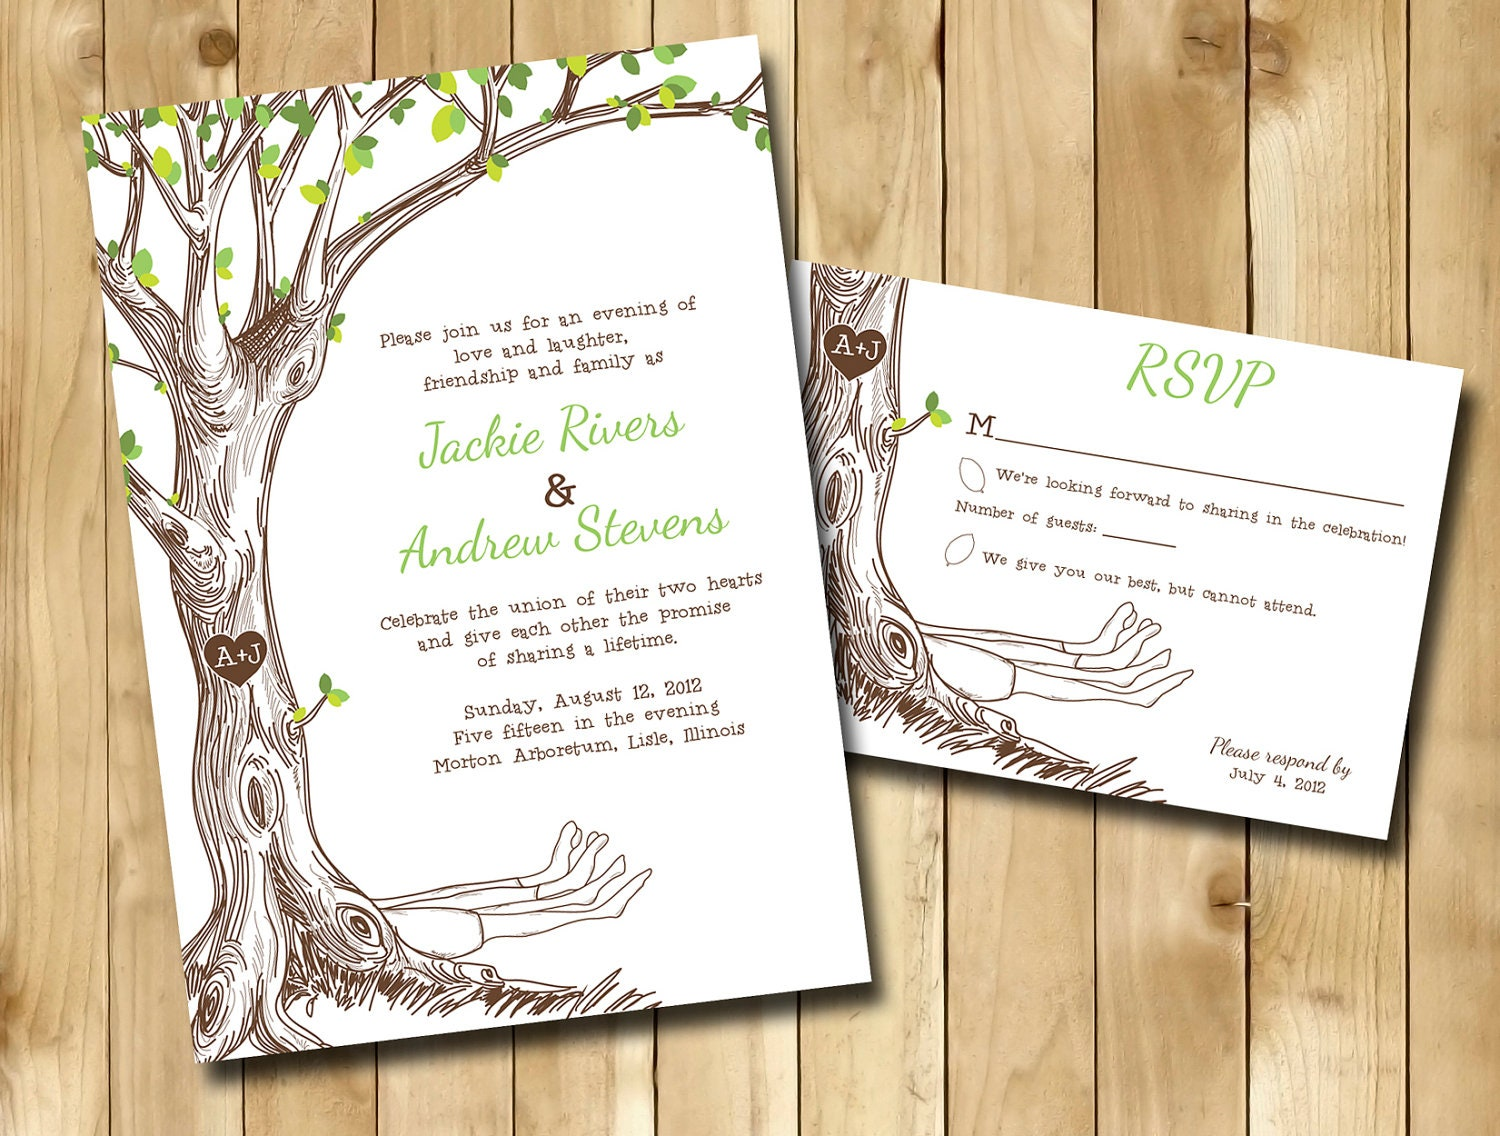 wedding invite script - Gidiye.redformapolitica.co